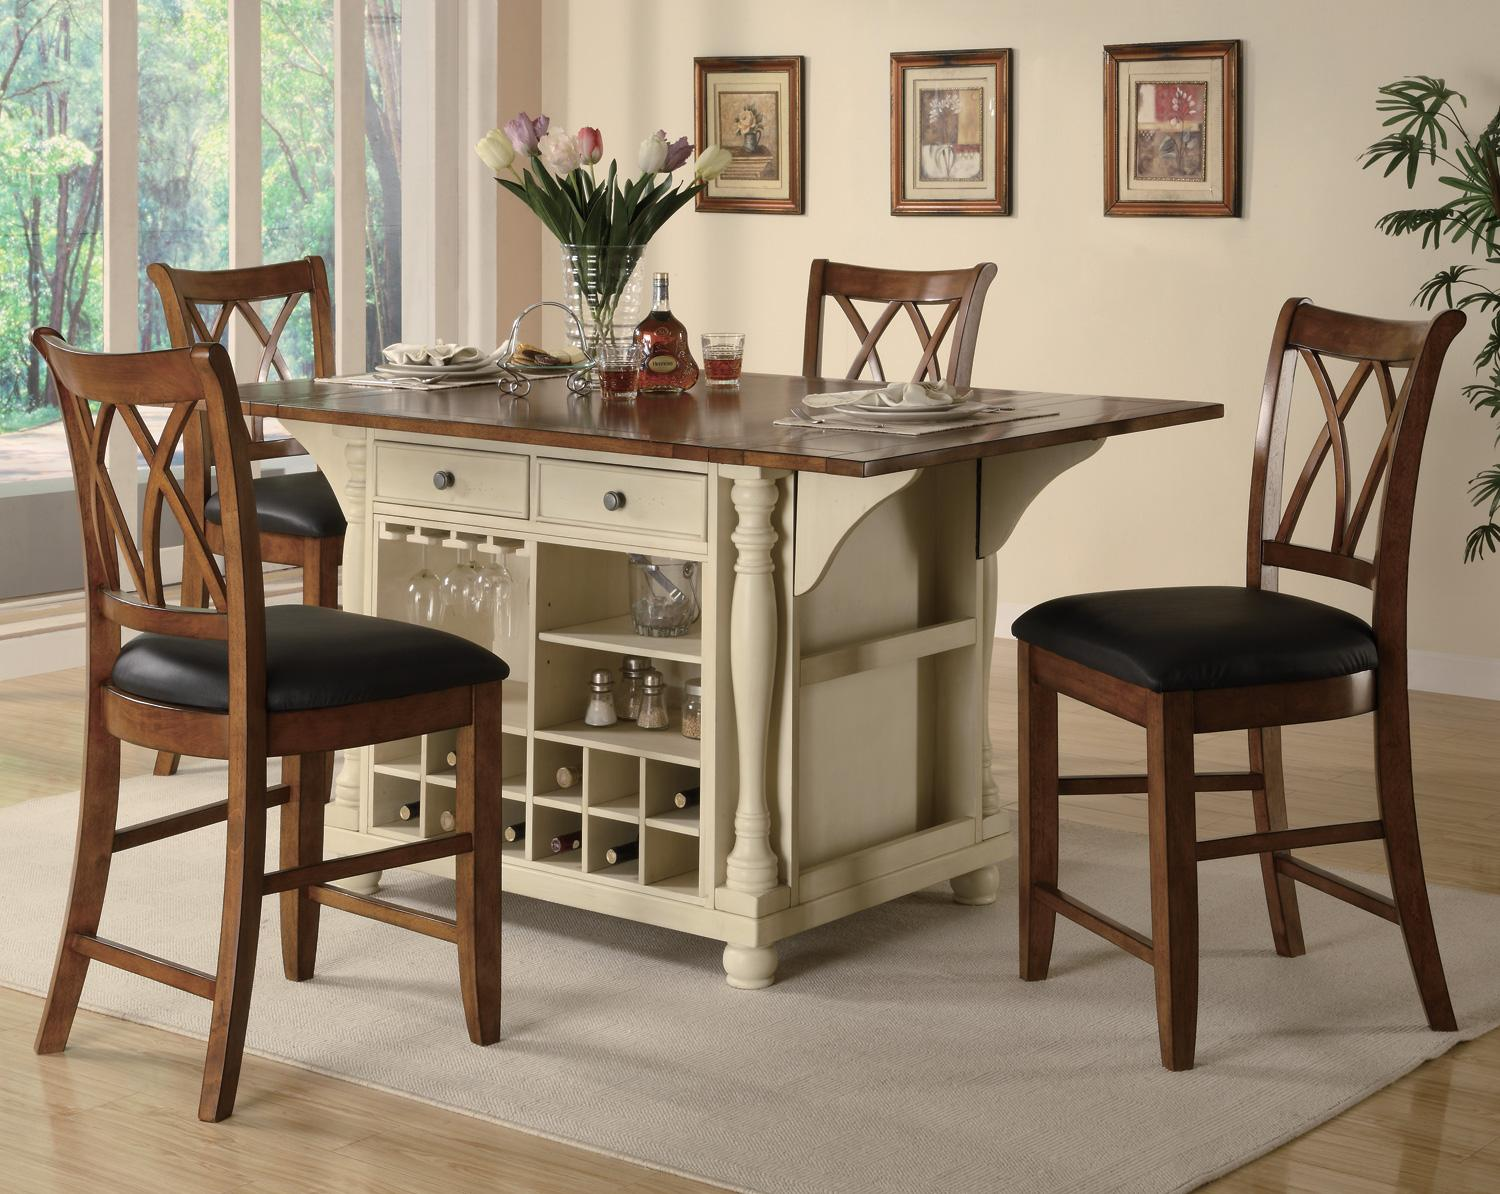 Discount Online Furniture Store| Best Online Furniture|Outlet